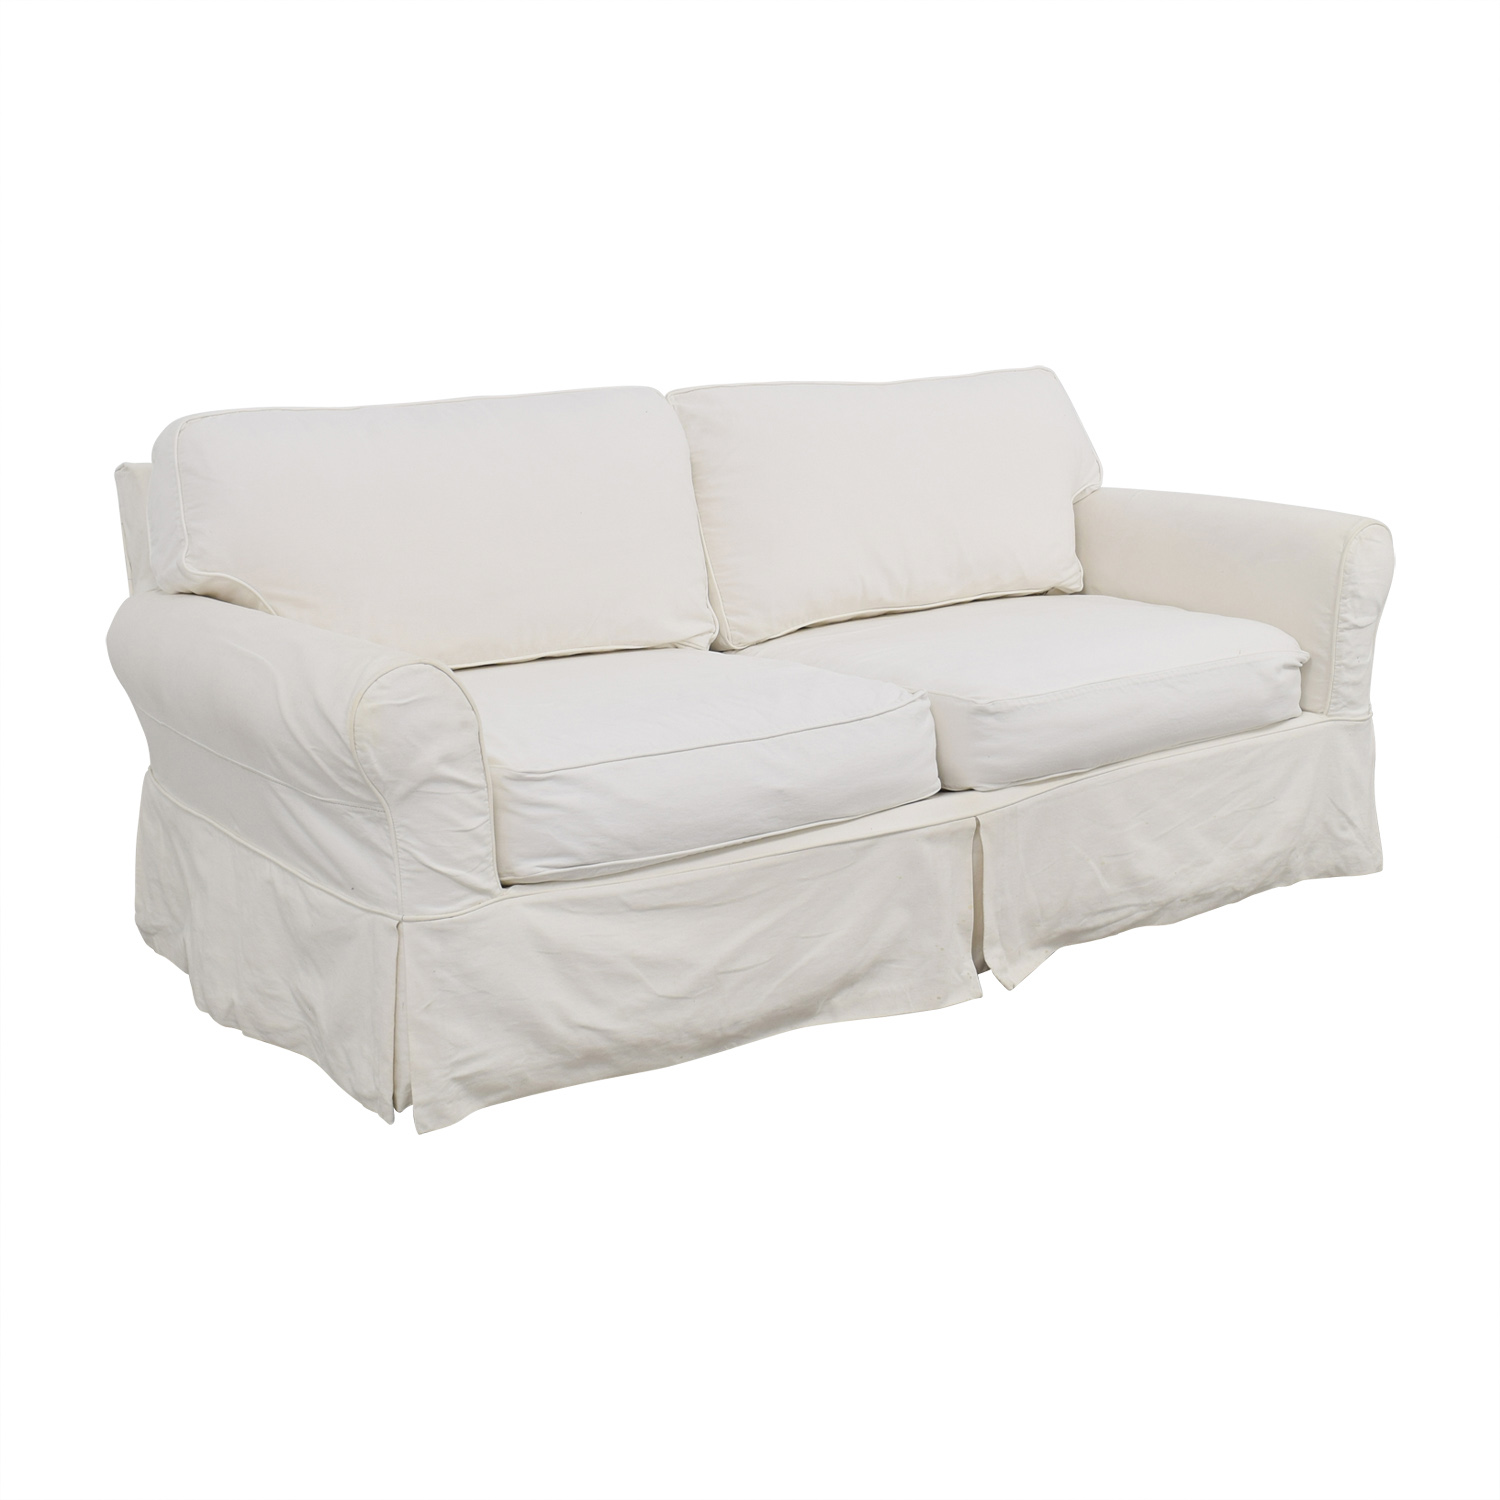 4% OFF - Rooms To Go Rooms To Go Cindy Crawford Beachside Natural Sofa /  Sofas